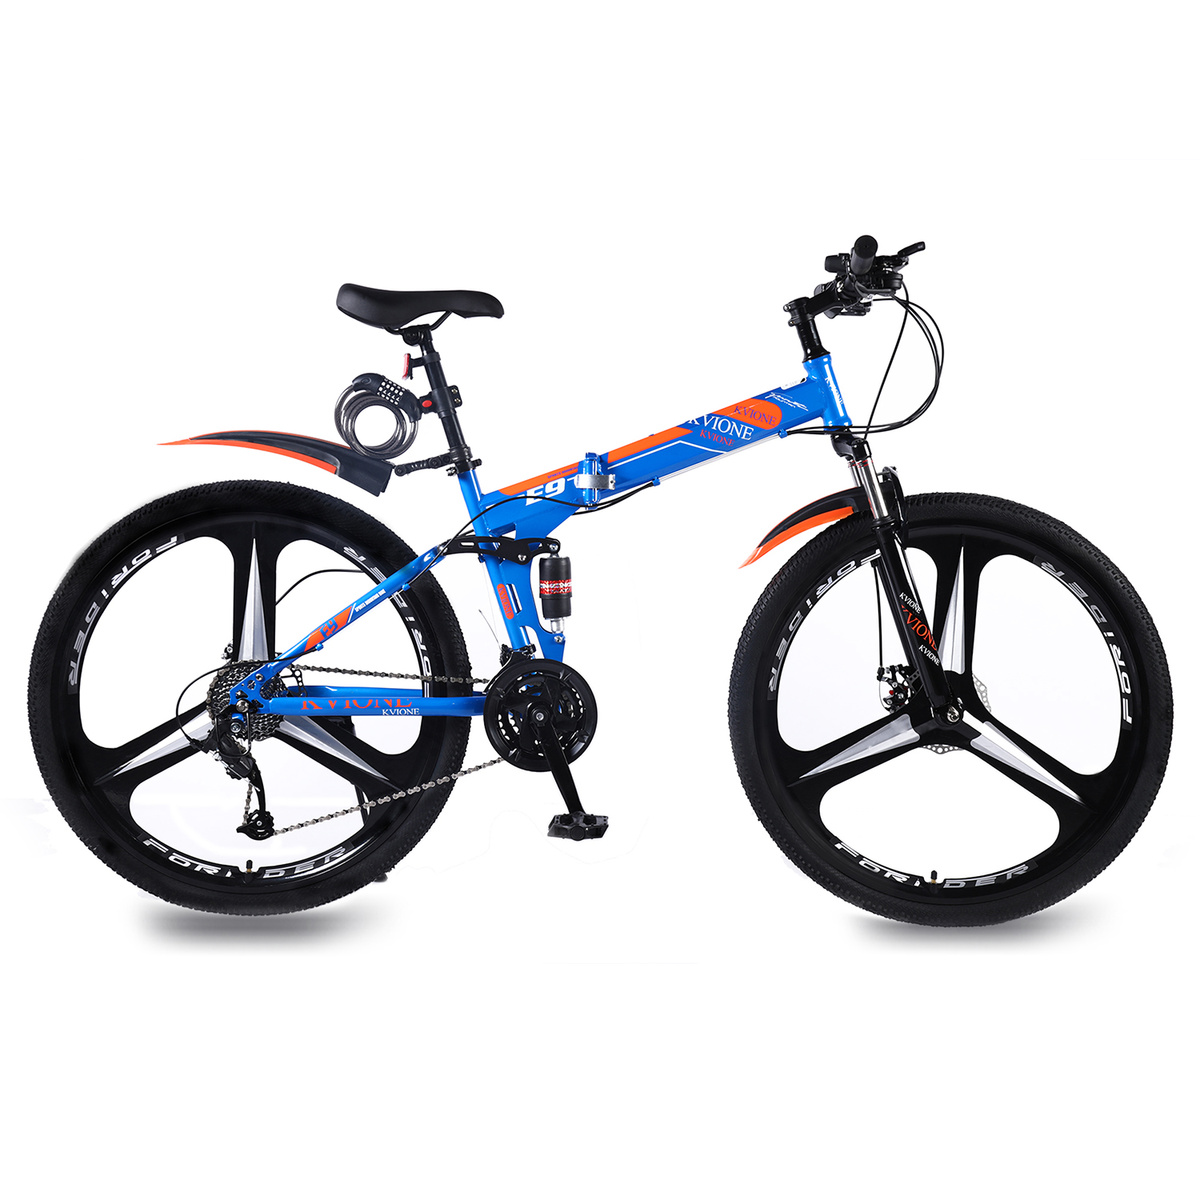 KVIONE E9 Mountain Bike For Men And Women 29 Inches MTB Mountain Bicycle High-carbon Steel With 27-speed Disc Brake Folding Bike